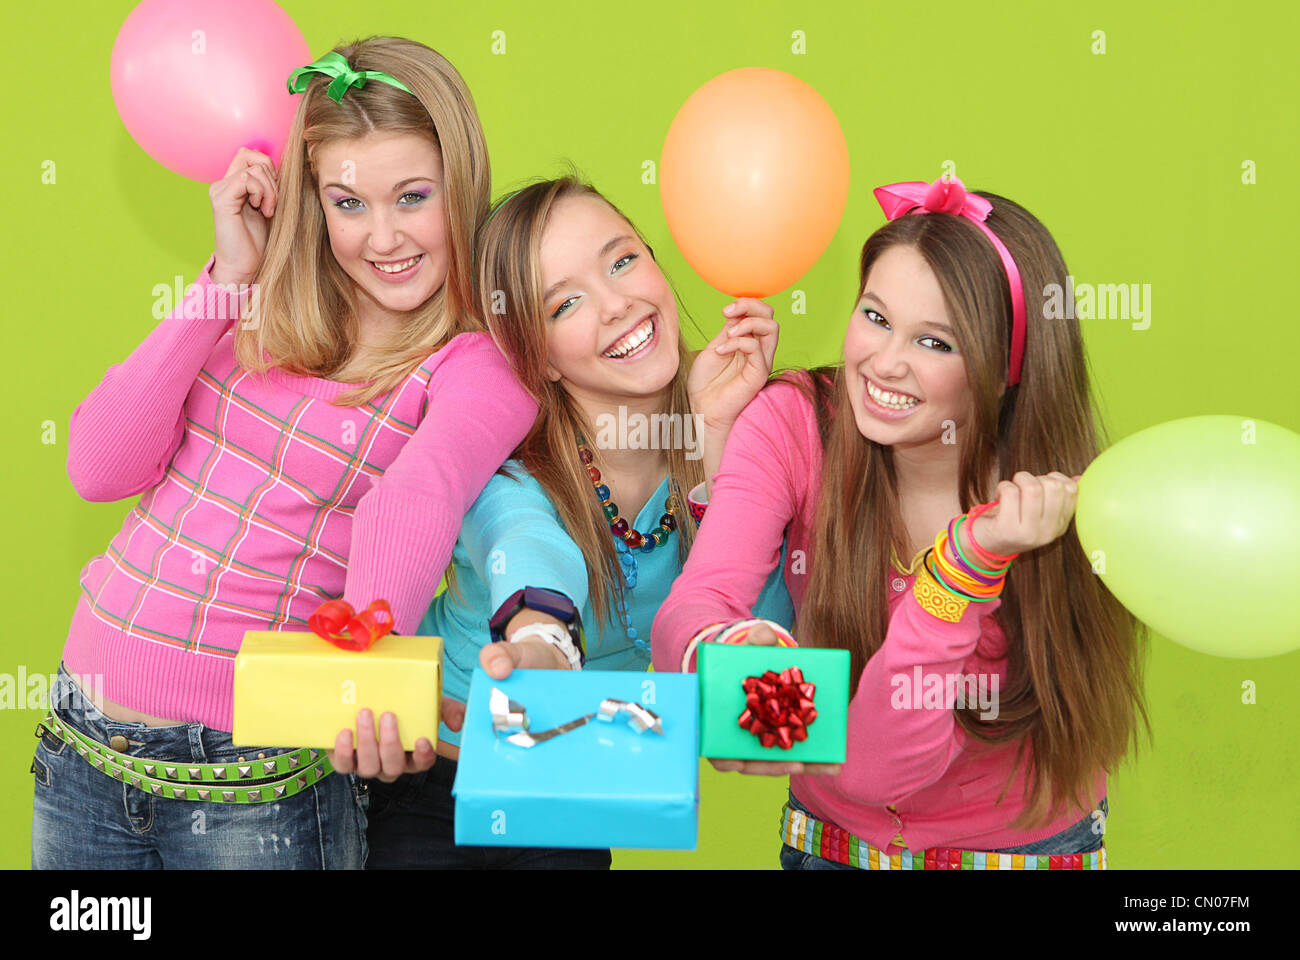 happy kids at birthday party giving wrapped gifts or presents - Stock Image